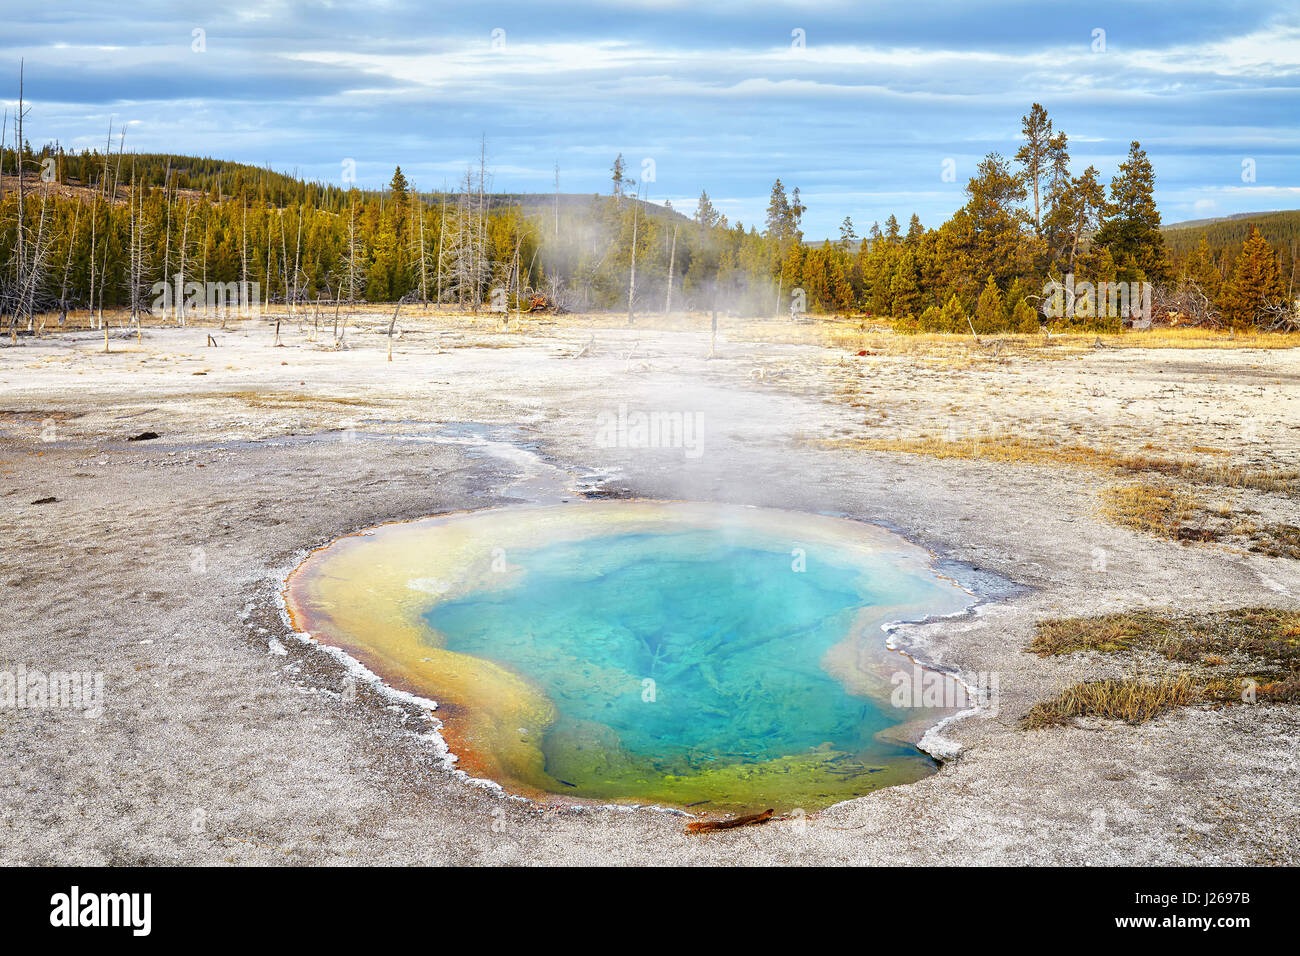 Yellowstone National Park, Wyoming, USA. Stock Photo